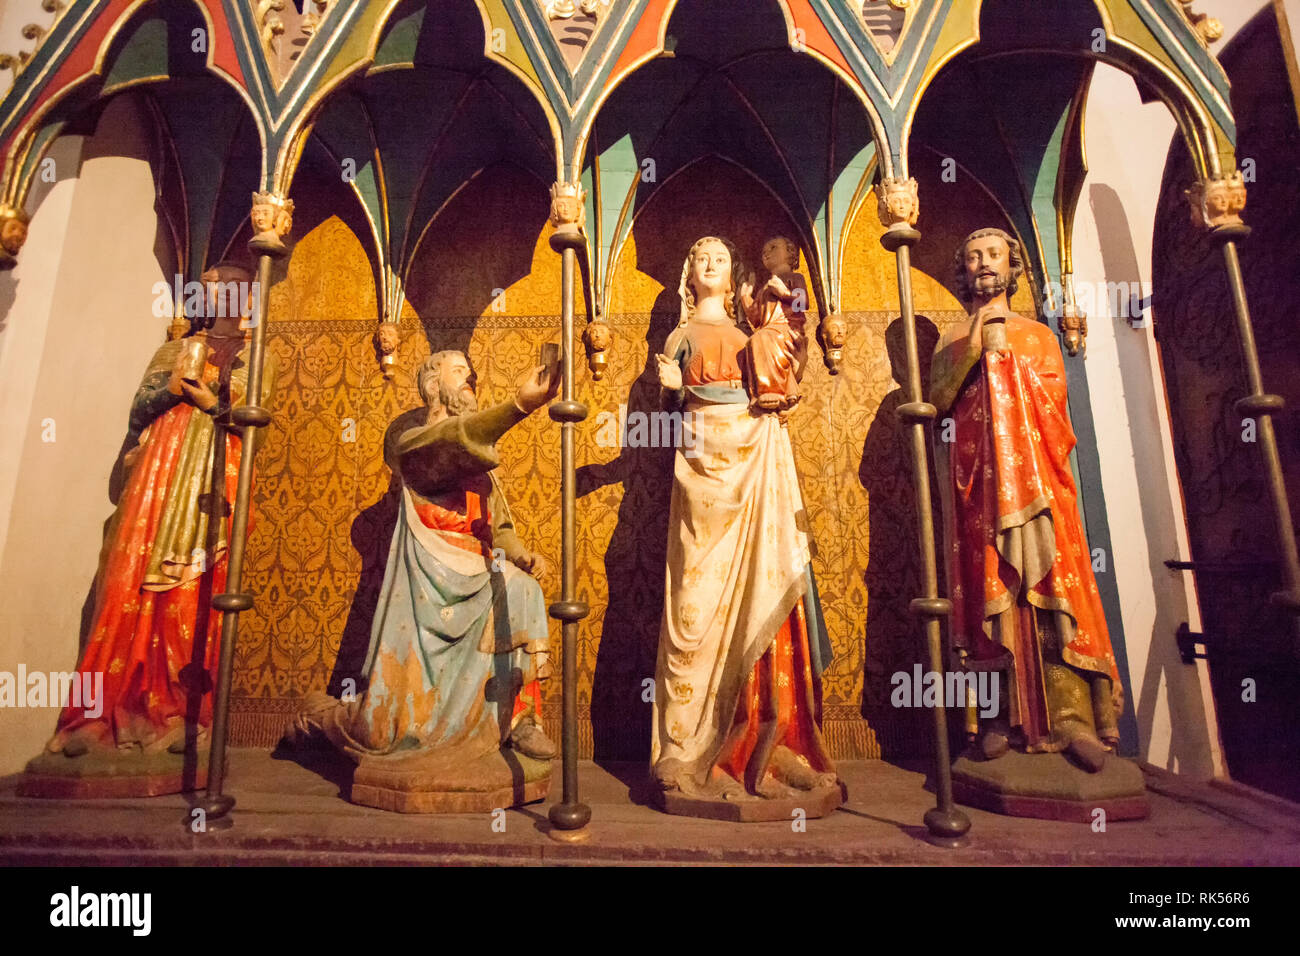 Group of statues with the Three Kings inside the Schleswig Cathedral, Schleswig, Schleswig-Holstein, Germany, Europe - Stock Image